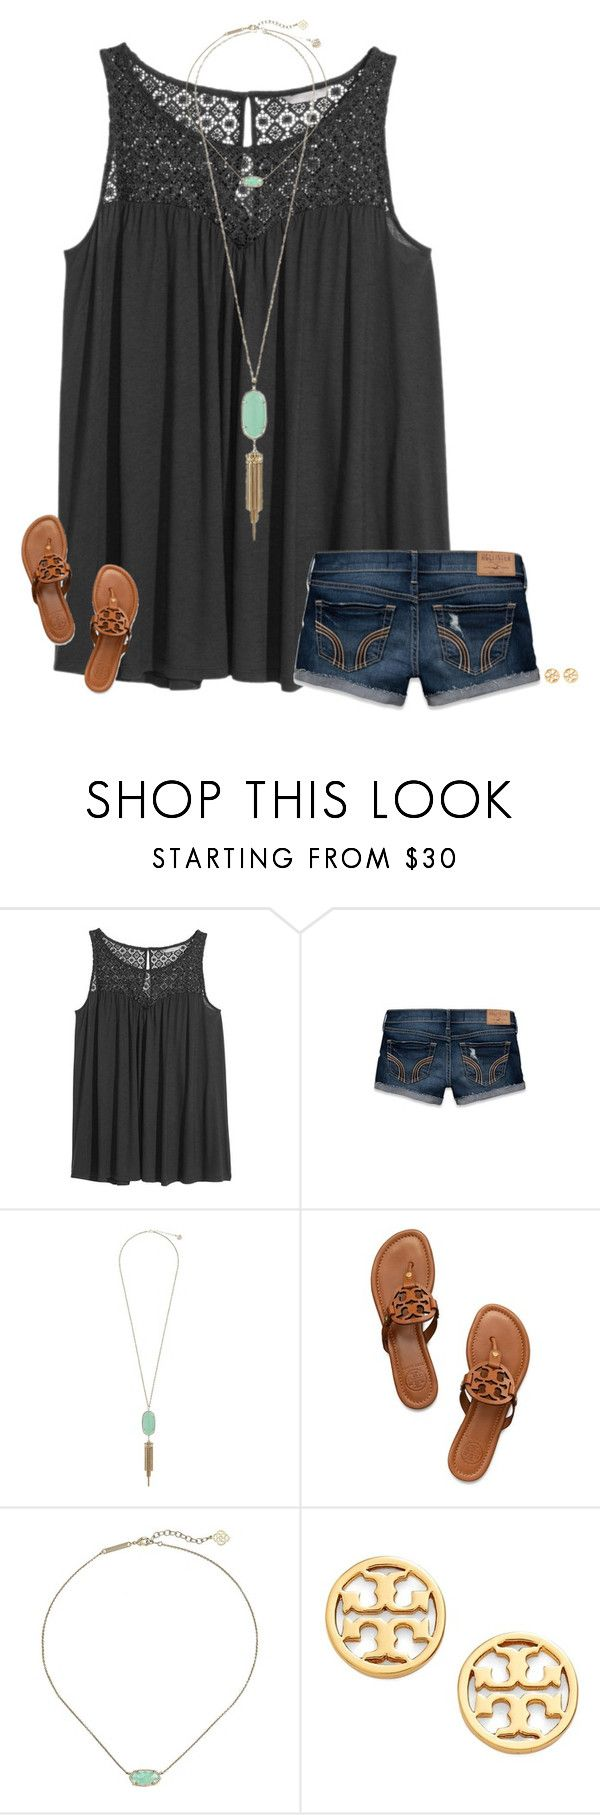 """""""ewwwww new update"""" by secfashion13 ❤ liked on Polyvore featuring H&M, Hollister Co., Kendra Scott and Tory Burch"""